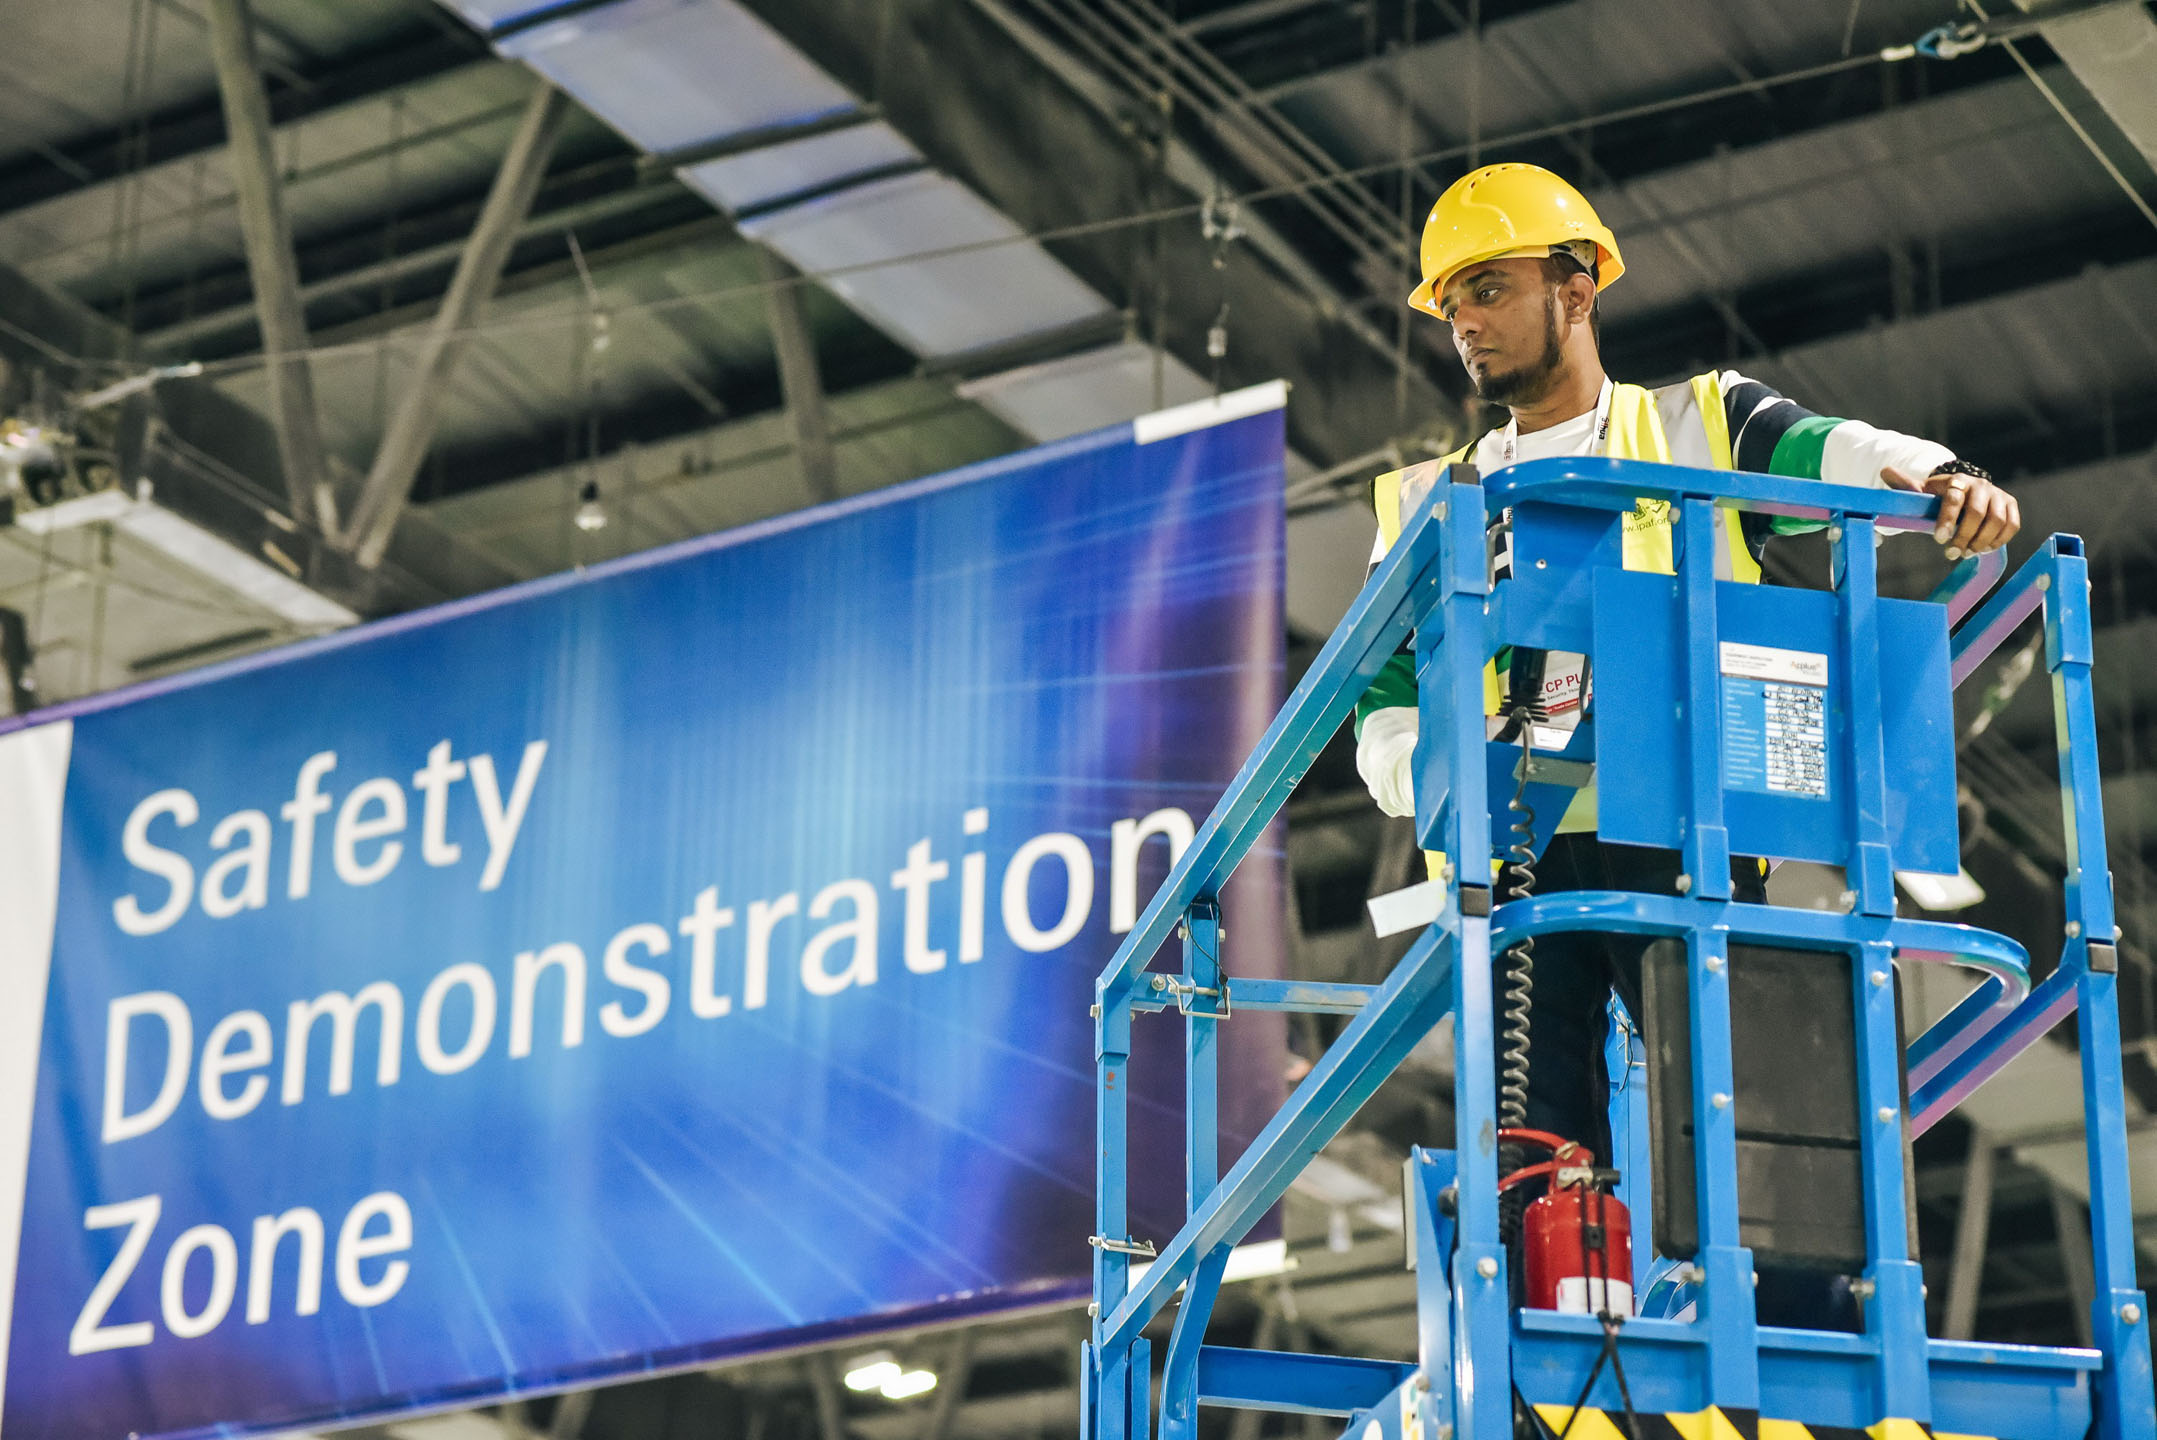 Safety Demonstration at Intersec 2020